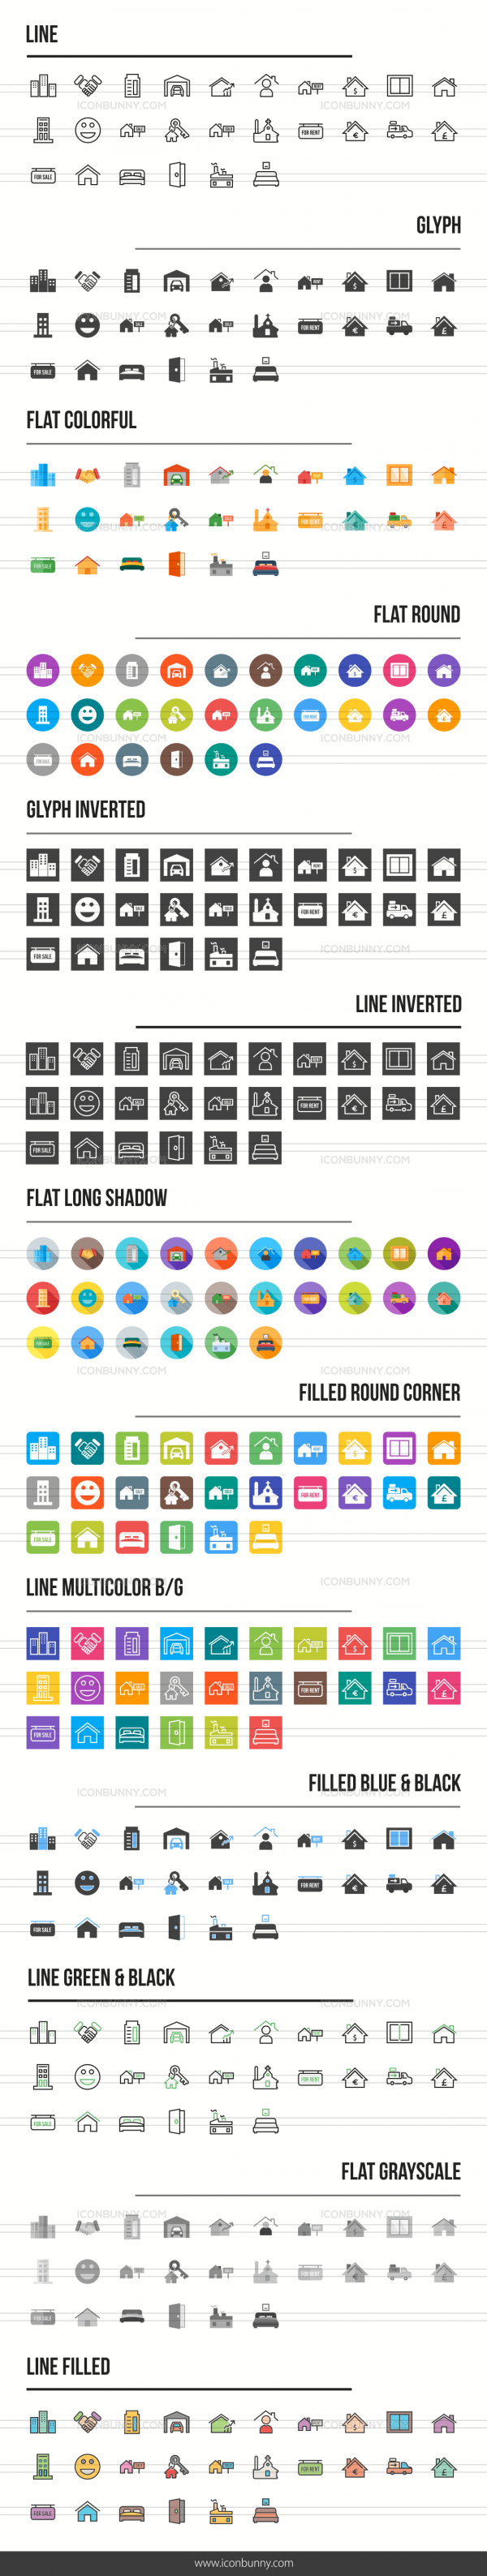 Real Estate Icons Bundle - Preview - IconBunny